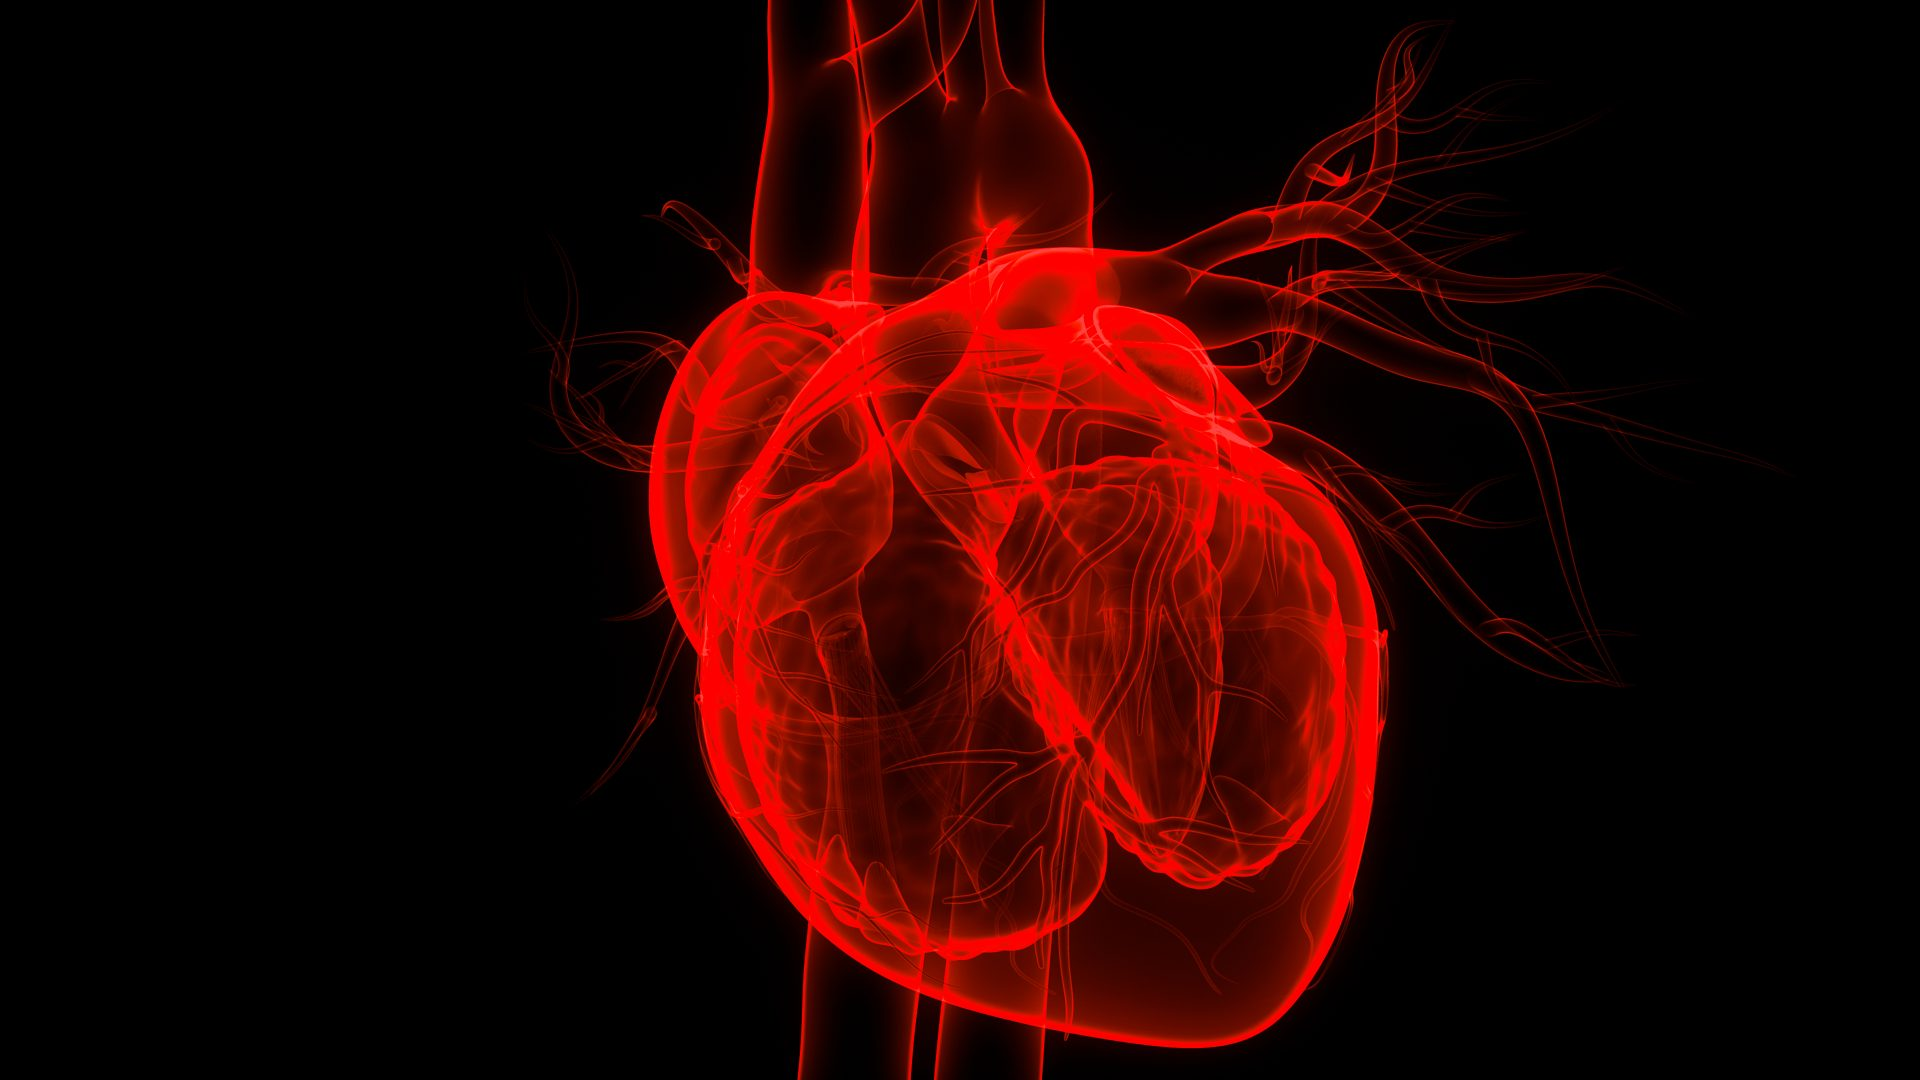 Heart disease is still a killer. Here's how to reverse it | WITF